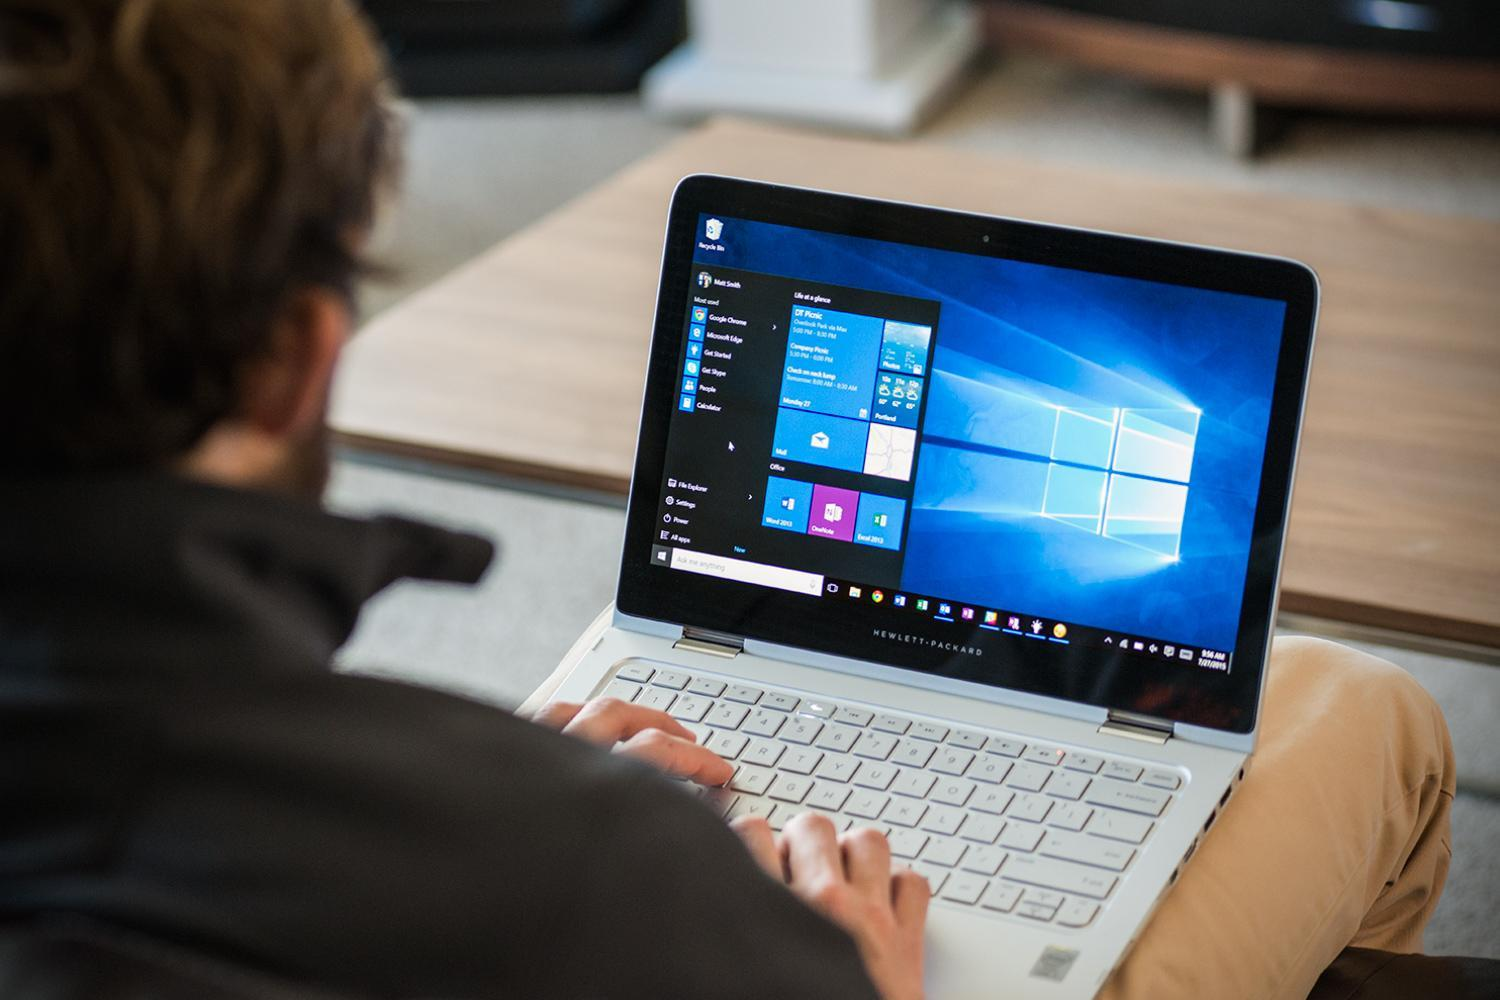 Microsoft Germany issues security warning to people still using Windows 7